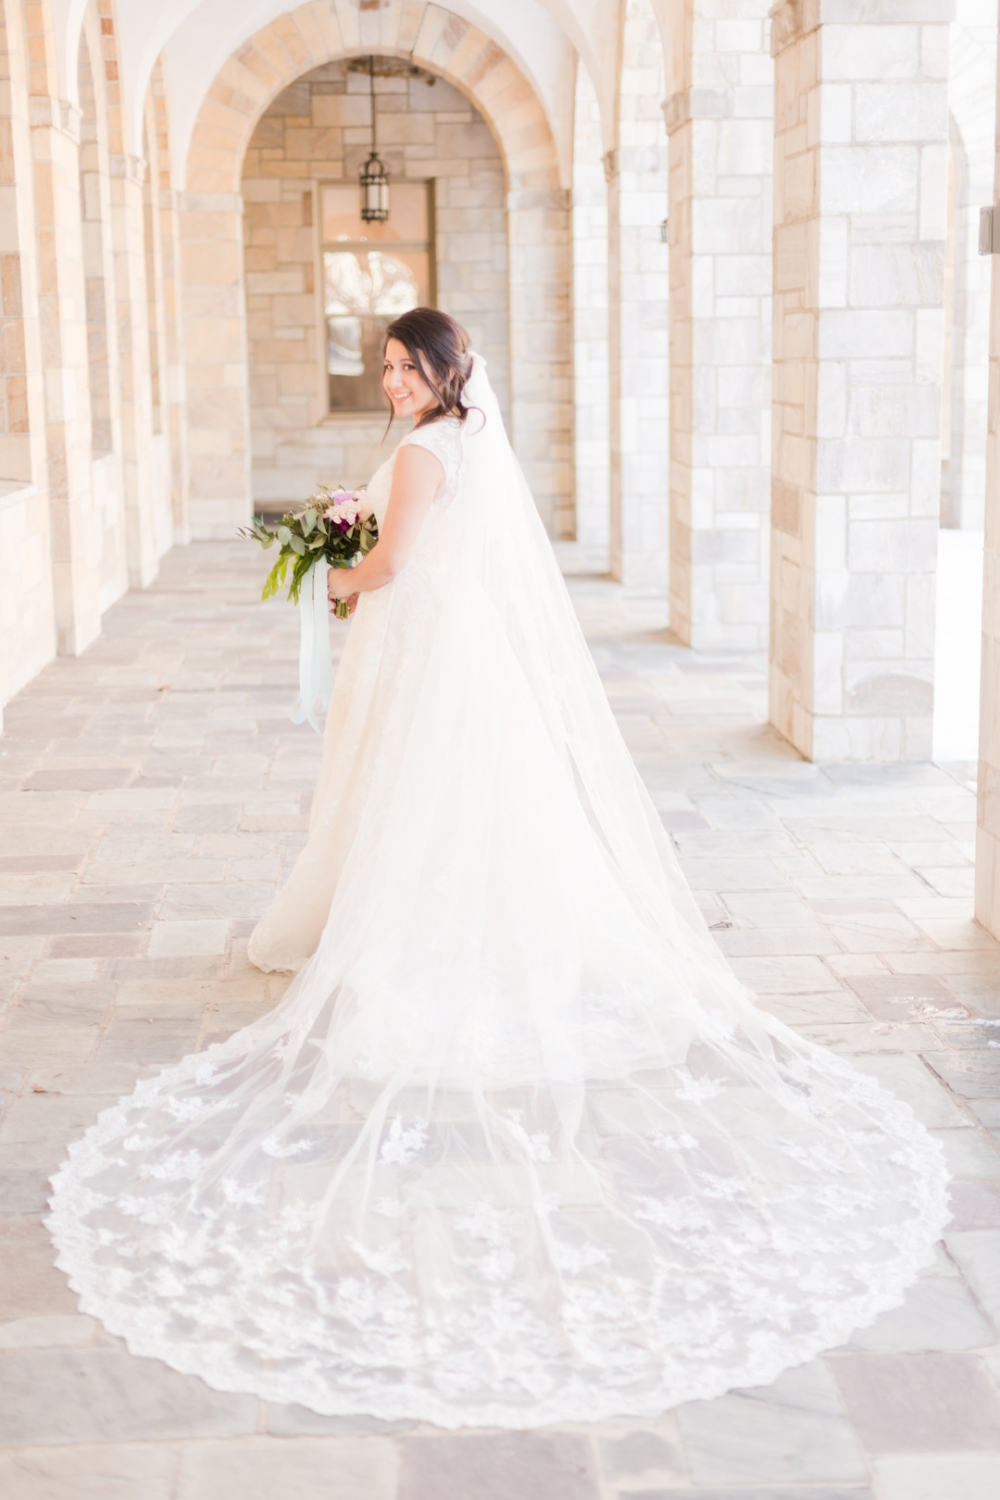 bride in stone church hallway